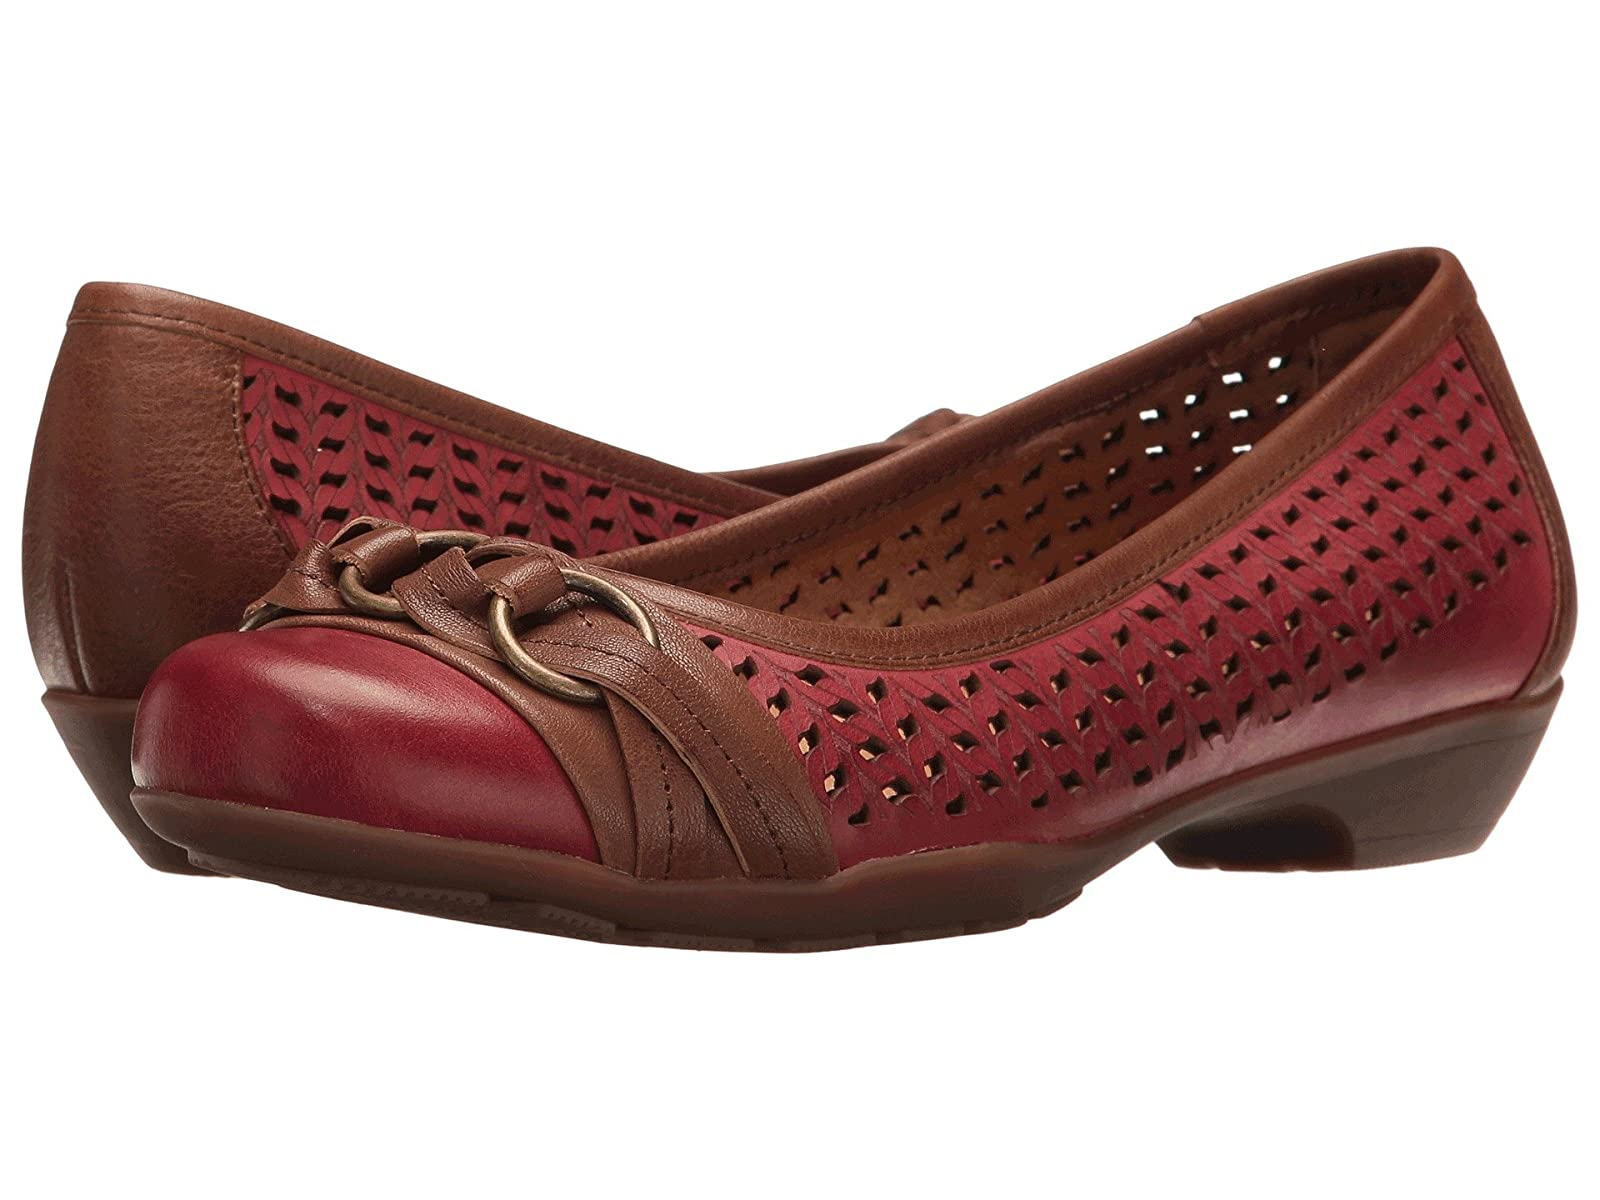 Comfortiva Posie Laser SoftspotsCheap and distinctive eye-catching shoes